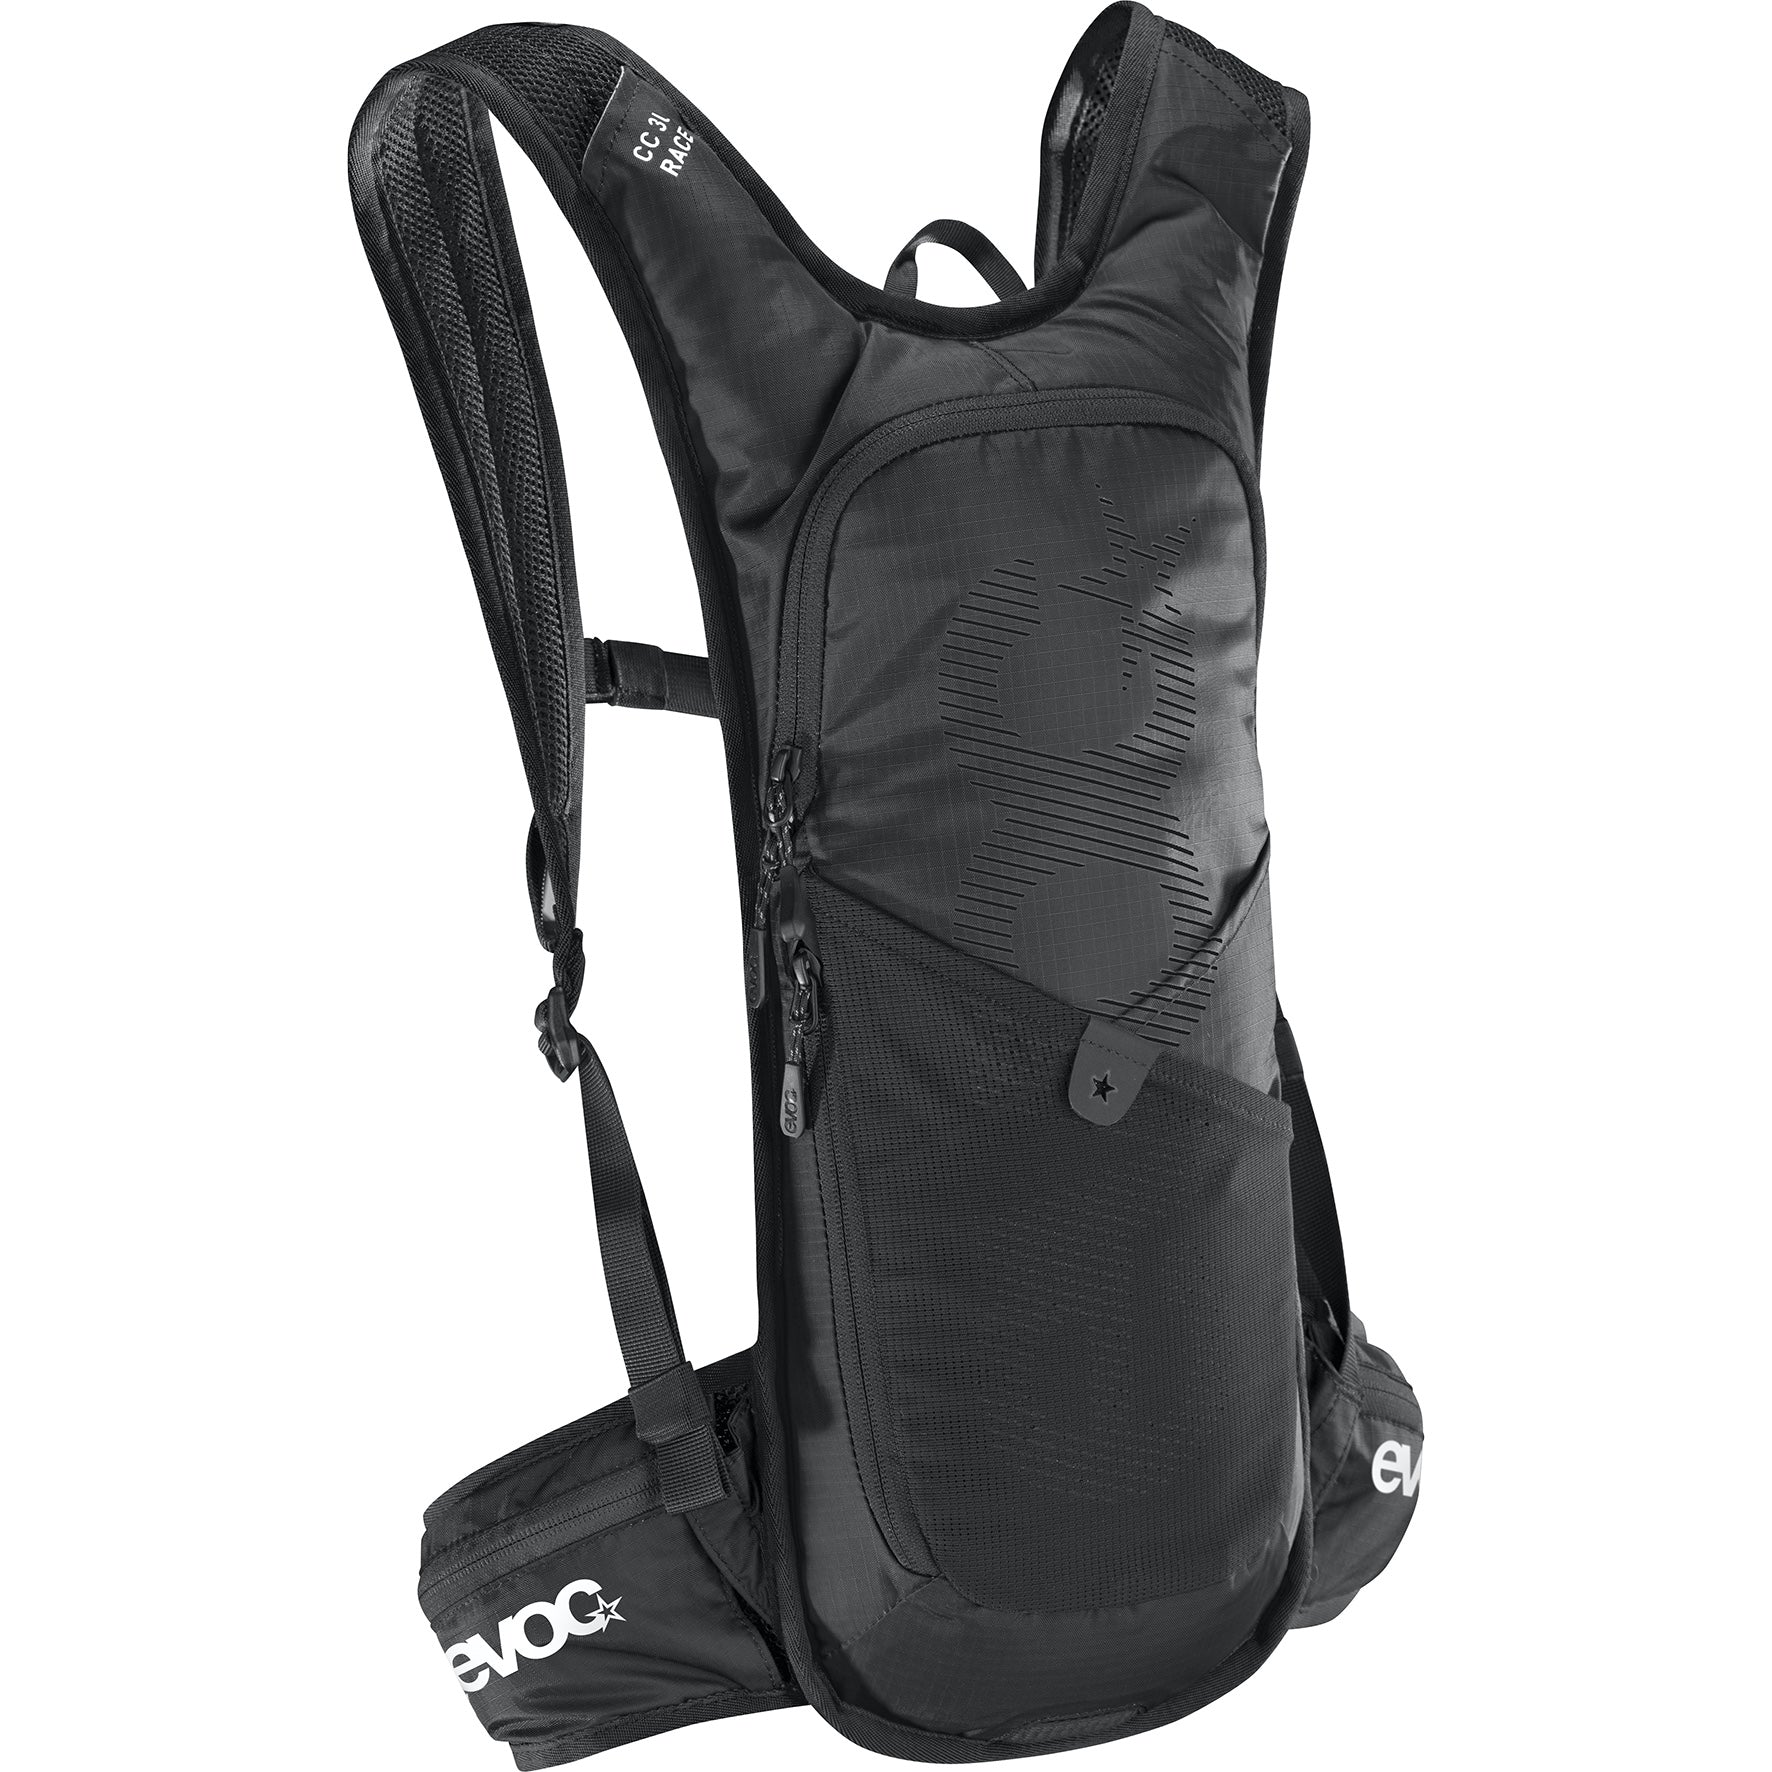 Mochila Evoc Cc 3l Race+2l Bladder Black